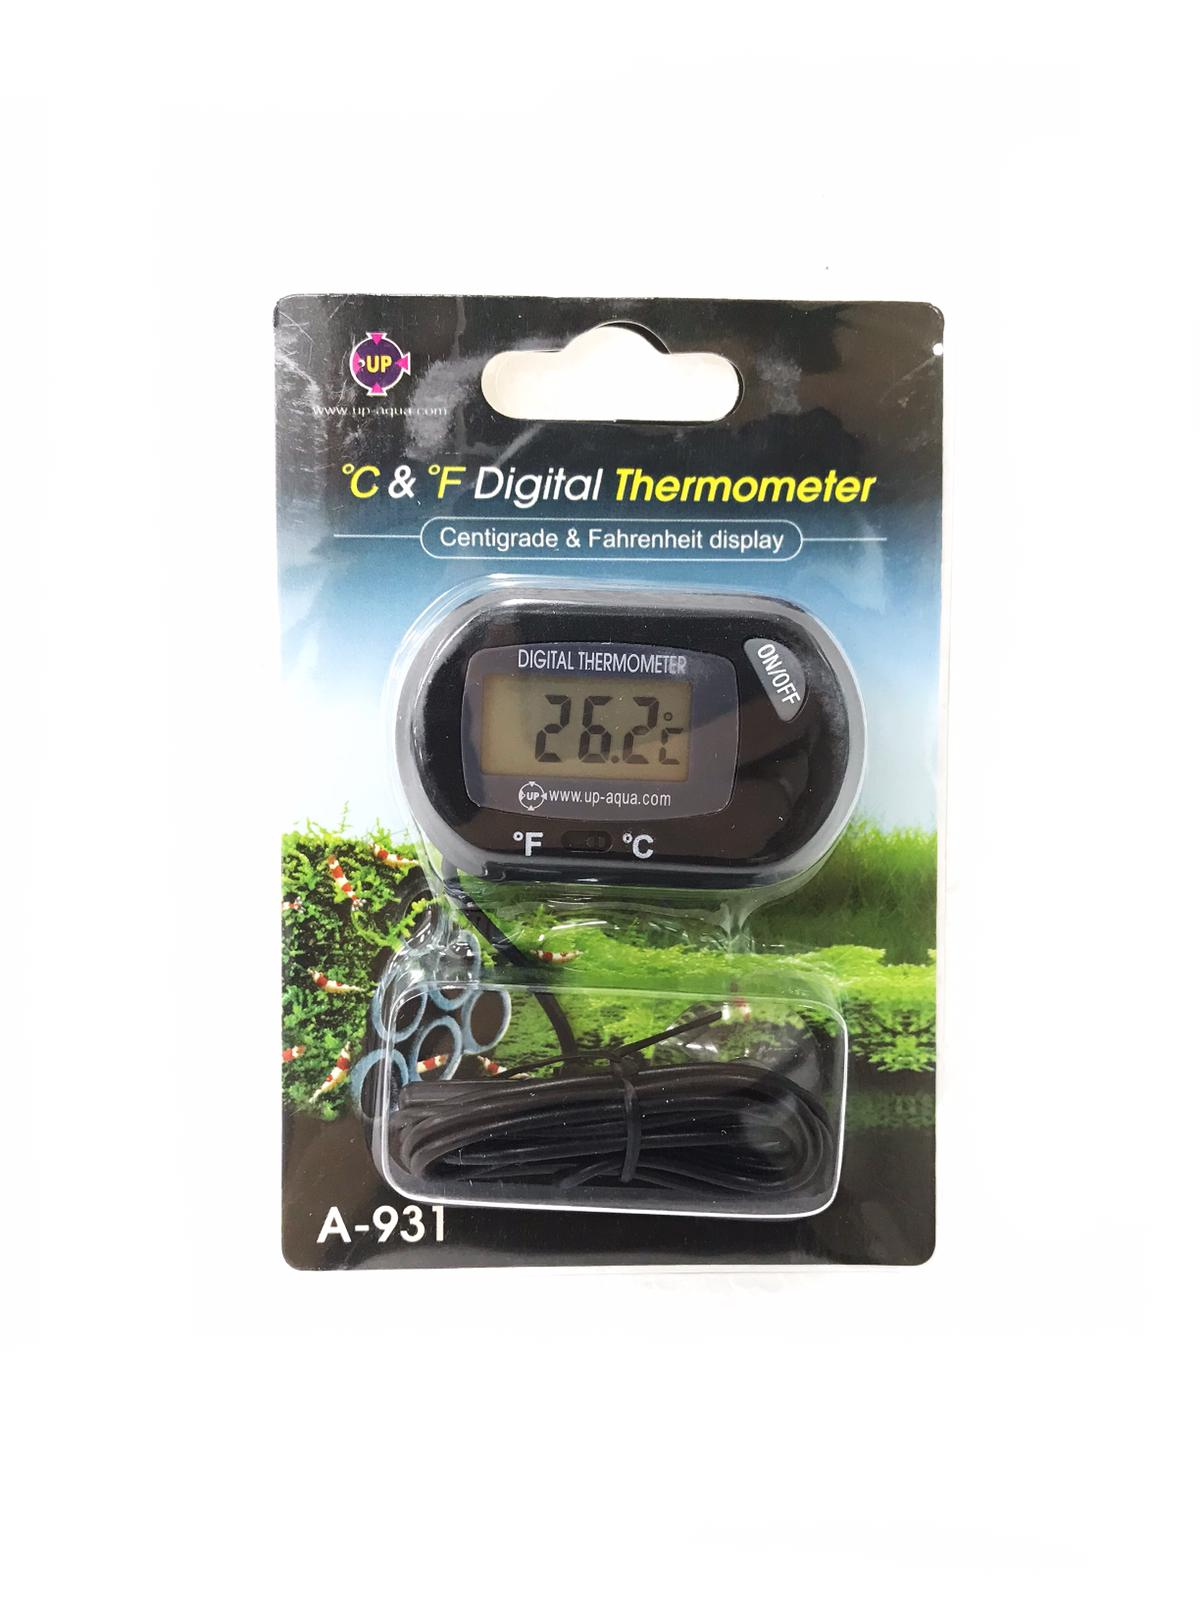 Up A-931 C And F Digital Thermometer